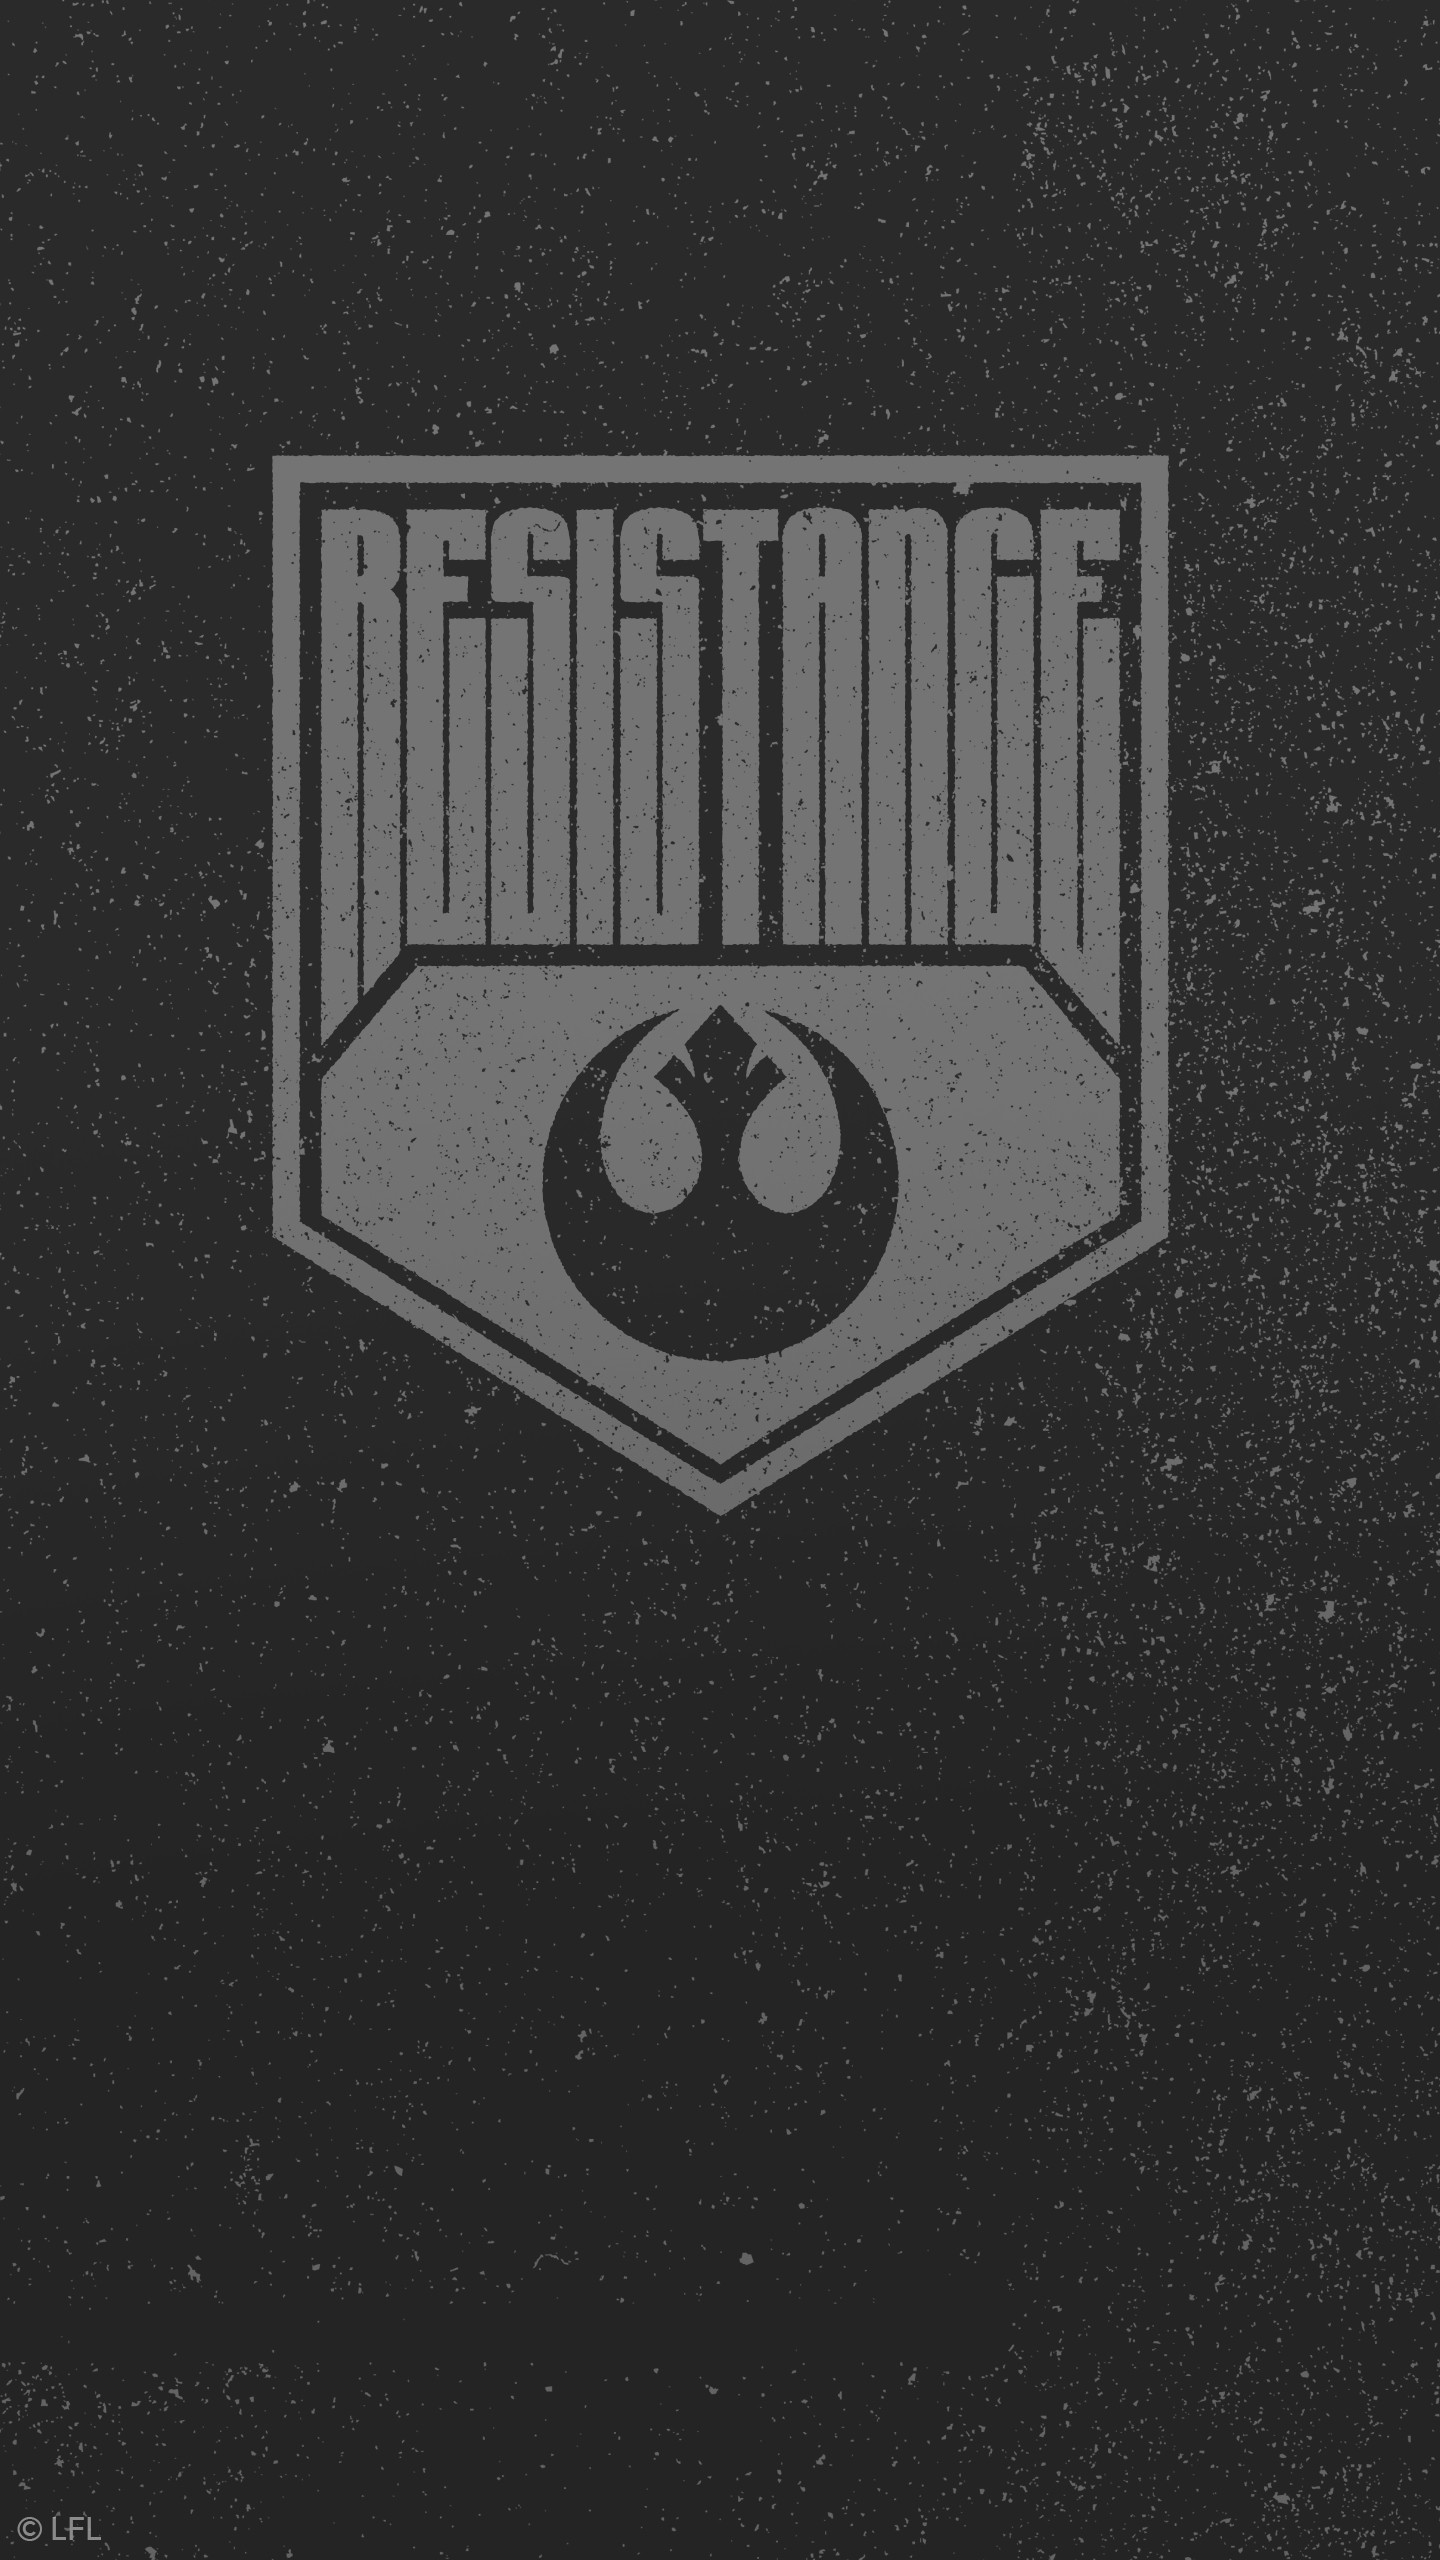 Star Wars Wallpaper For Android